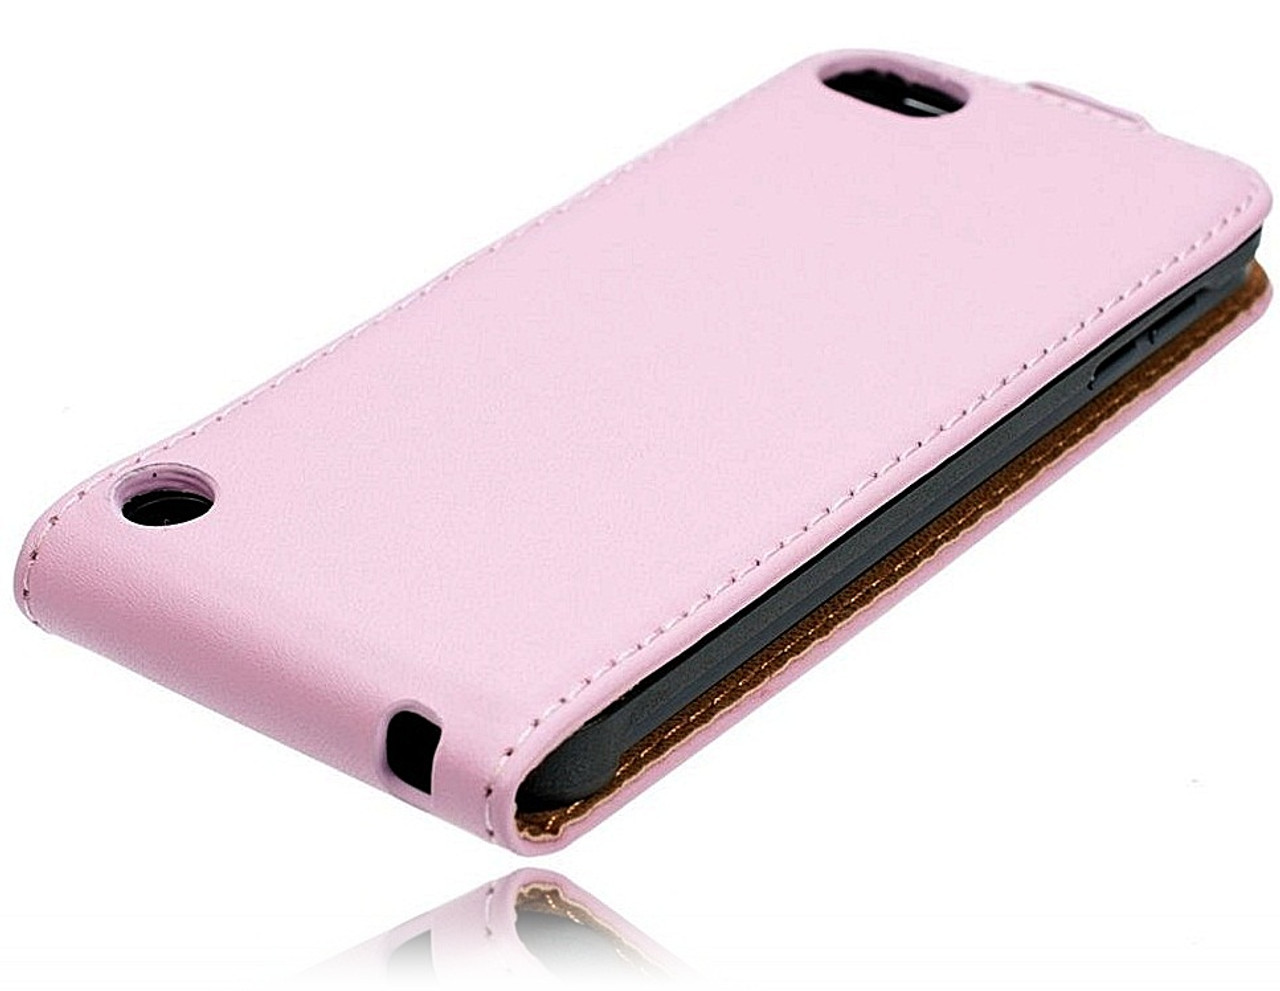 separation shoes d8486 e9f02 iPod Touch 6/5 Leather Flip Case Pink